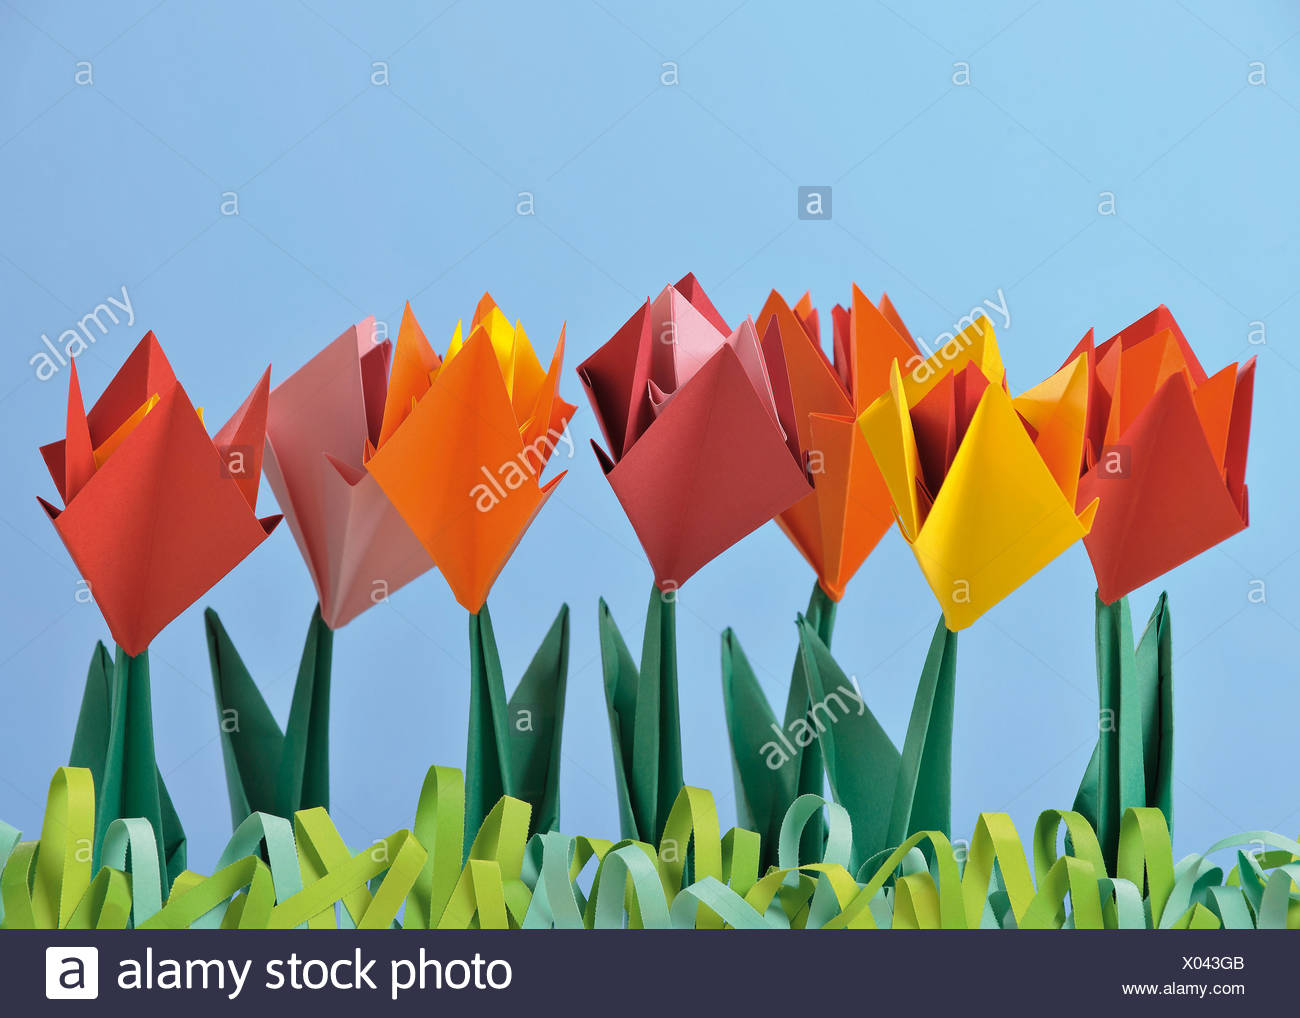 Origami Flower Tulip Stock Photos Origami Flower Tulip Stock